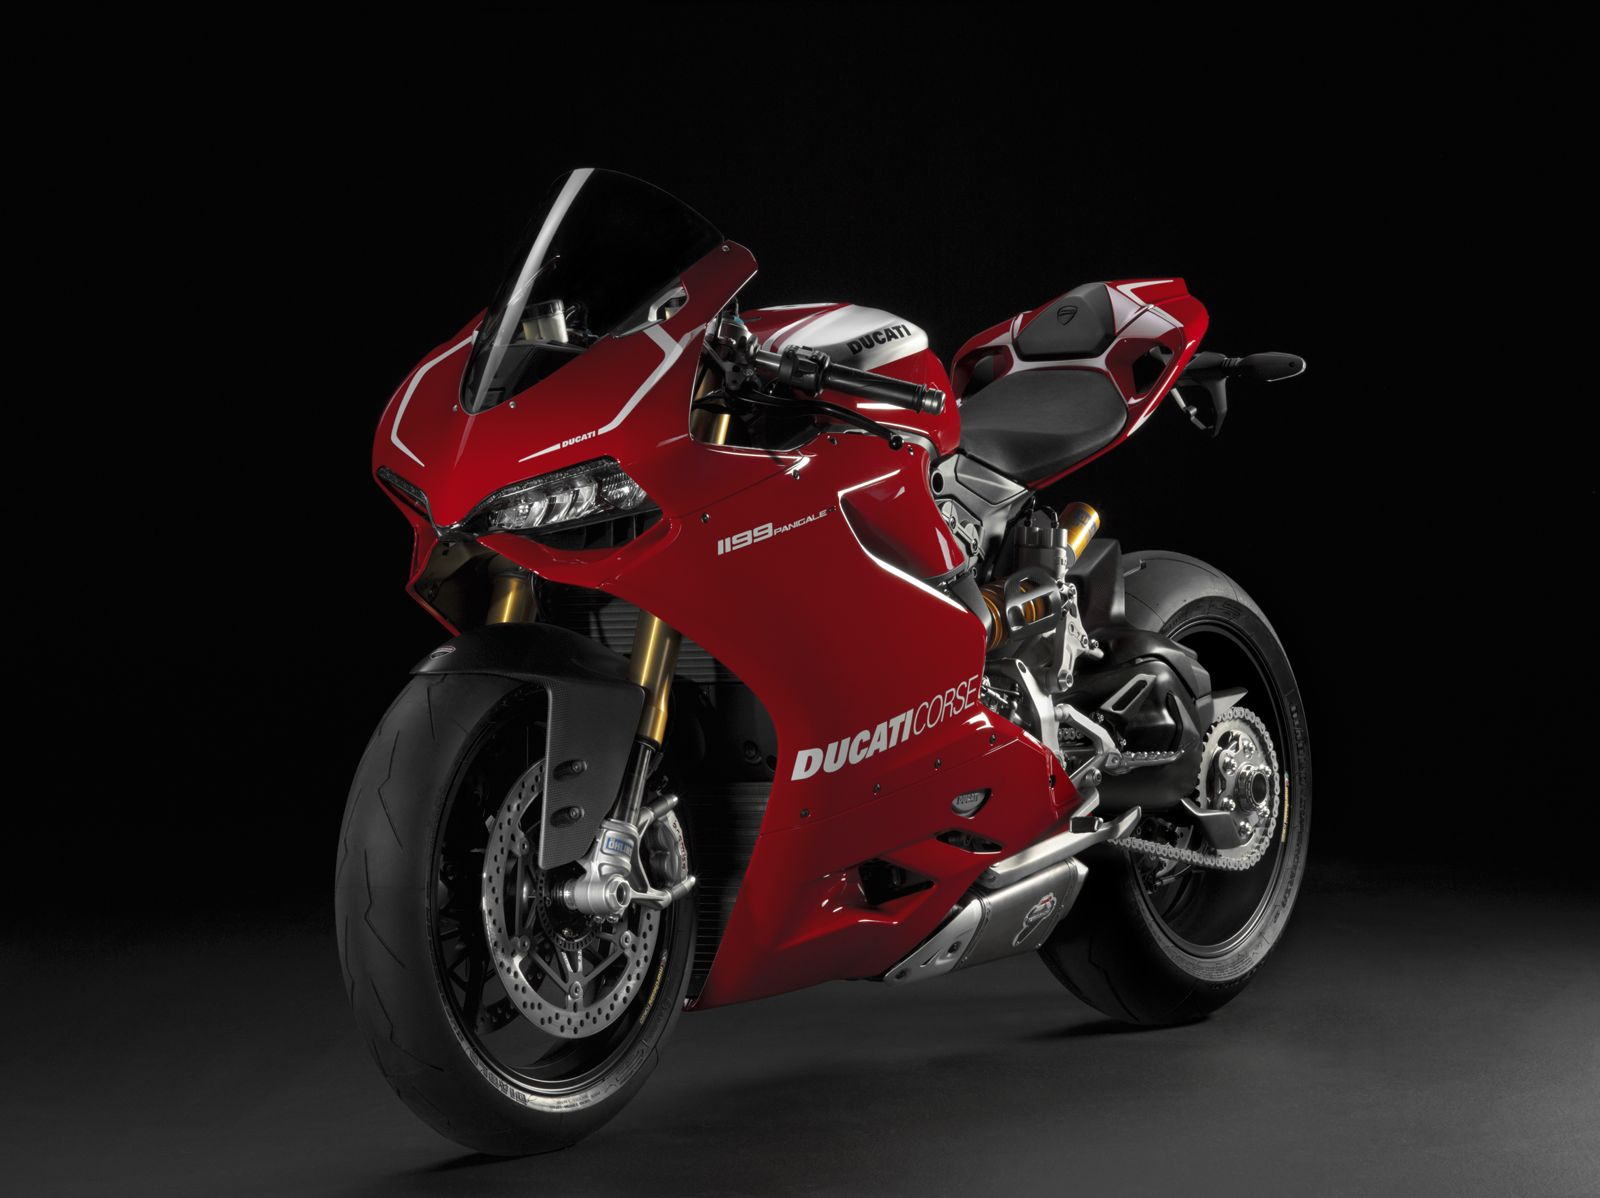 2013 ducati 1199 panigale r official pictures autoevolution. Black Bedroom Furniture Sets. Home Design Ideas